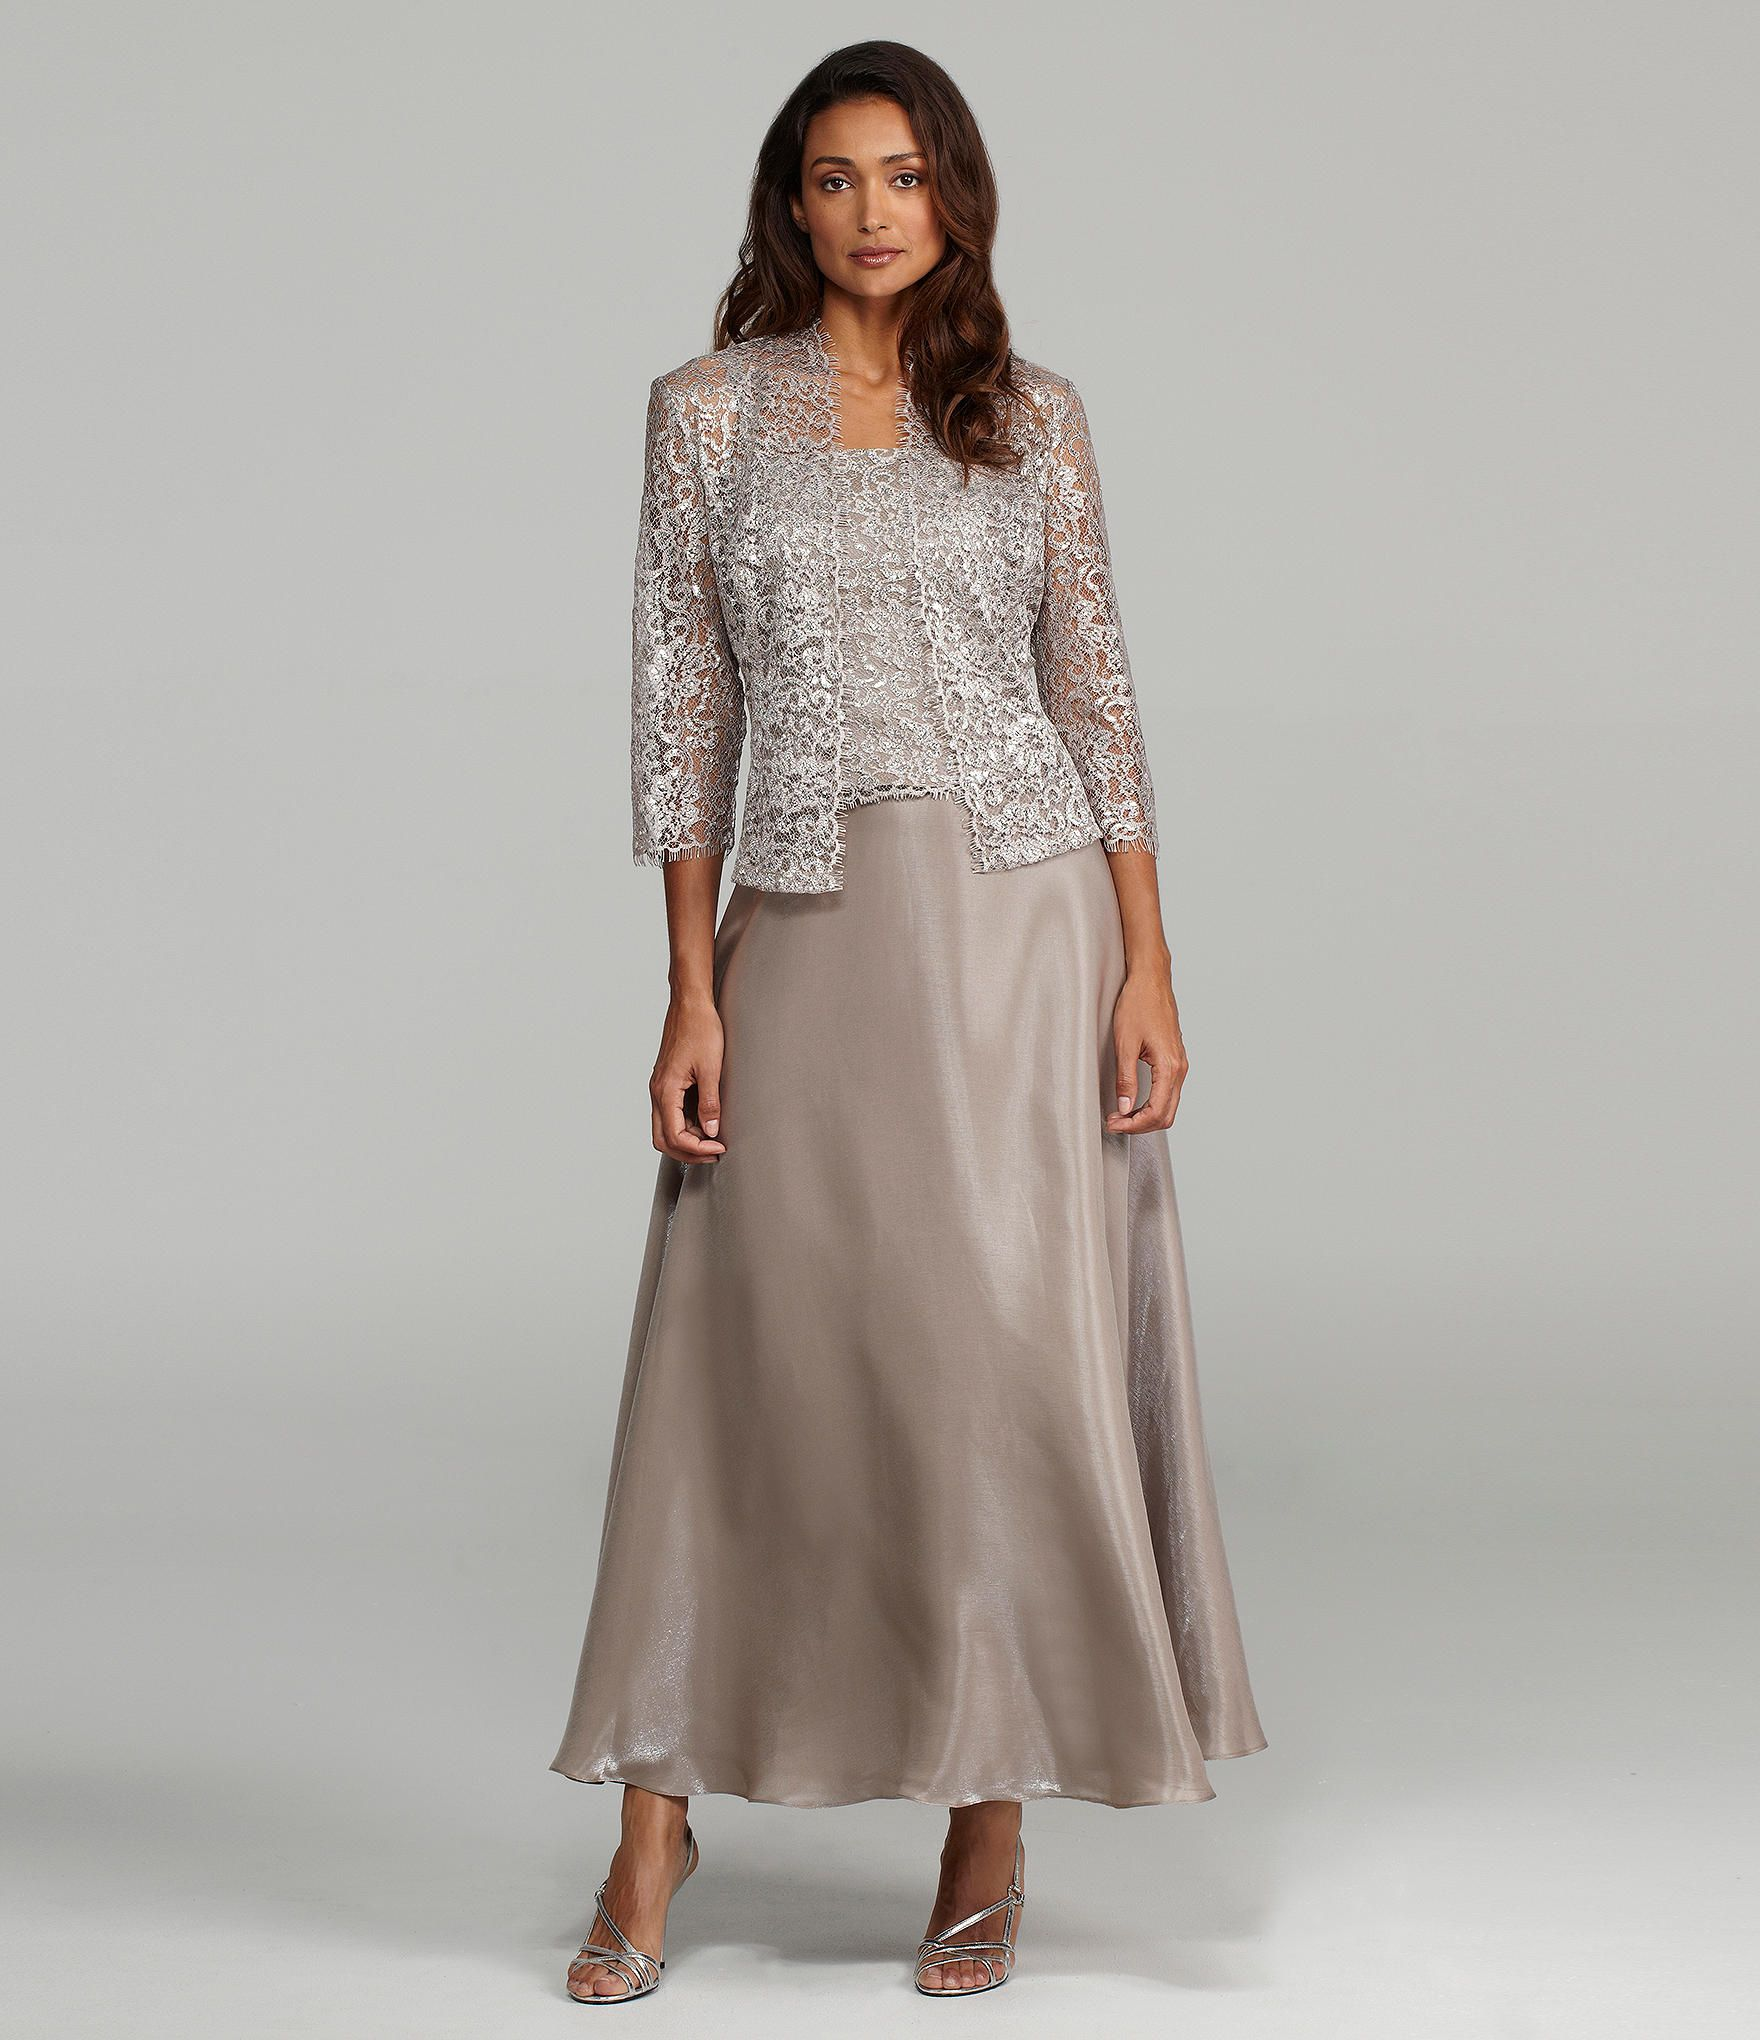 KM Collections Woman Lace Jacket Dress | Dillards | Mother of groom ...